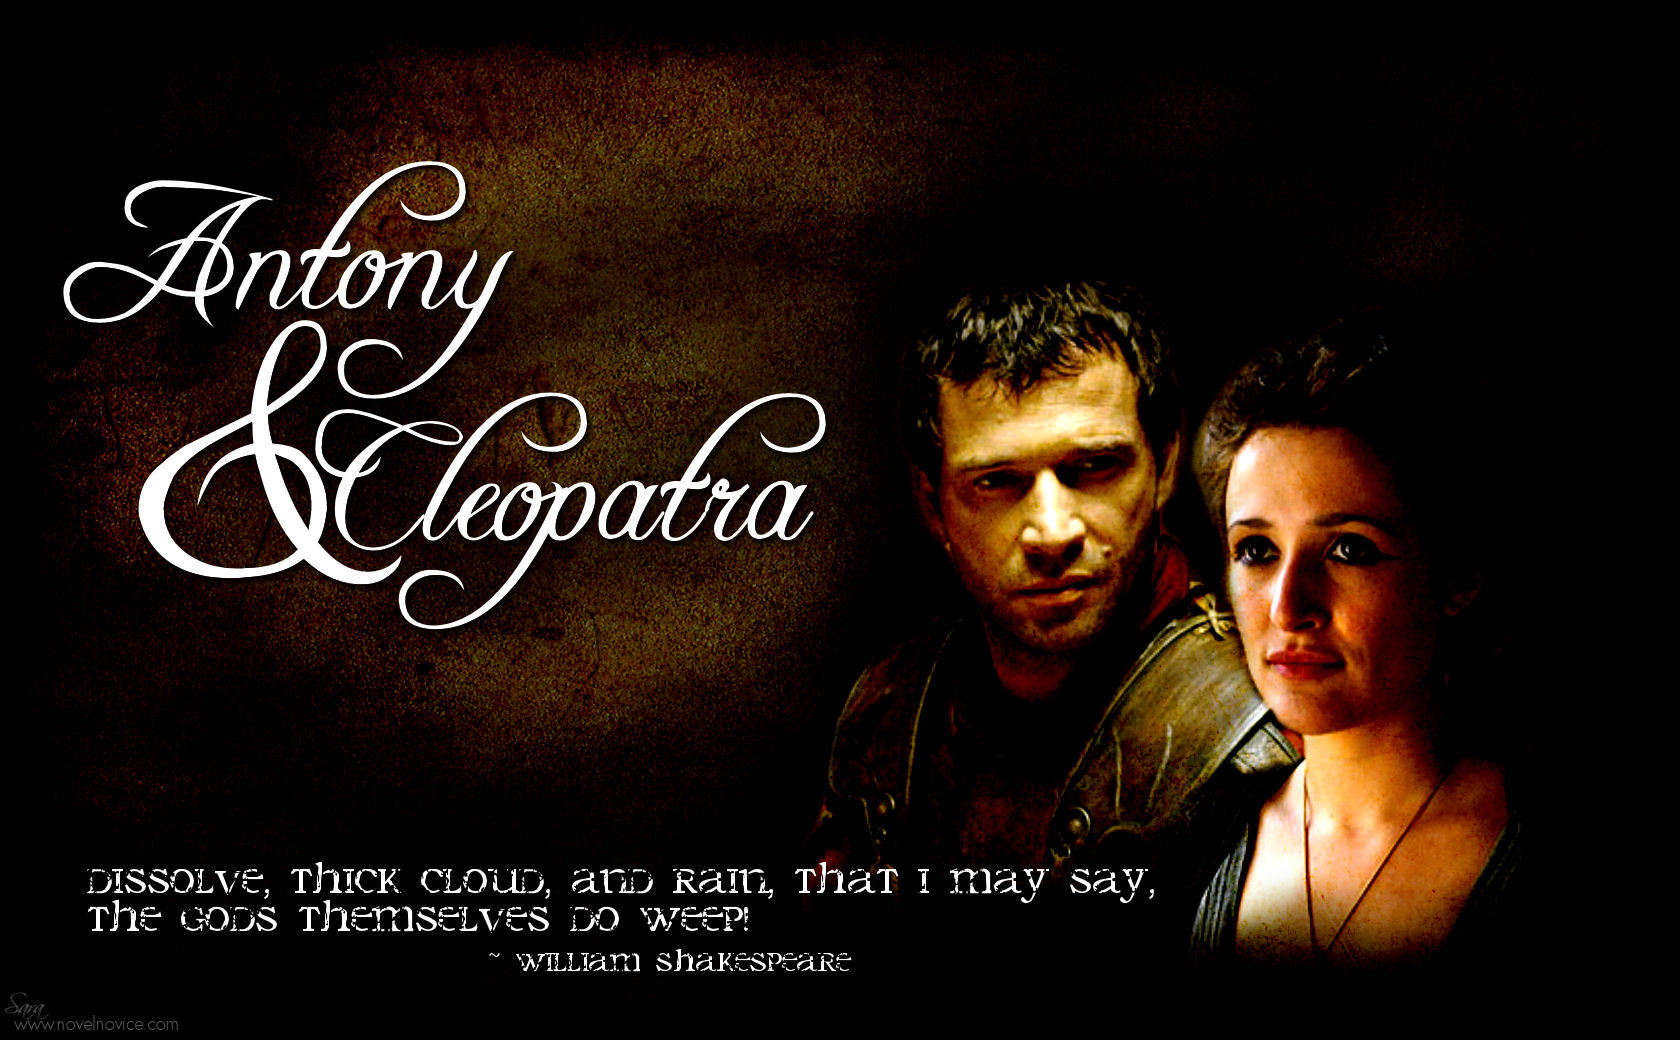 antony and cleopatra powerplay essays Work on this job or post your own for free this question is based upon shakespeare's 'antony and cleopatra antony and cleopatra- powerplay essays: over 180,000.